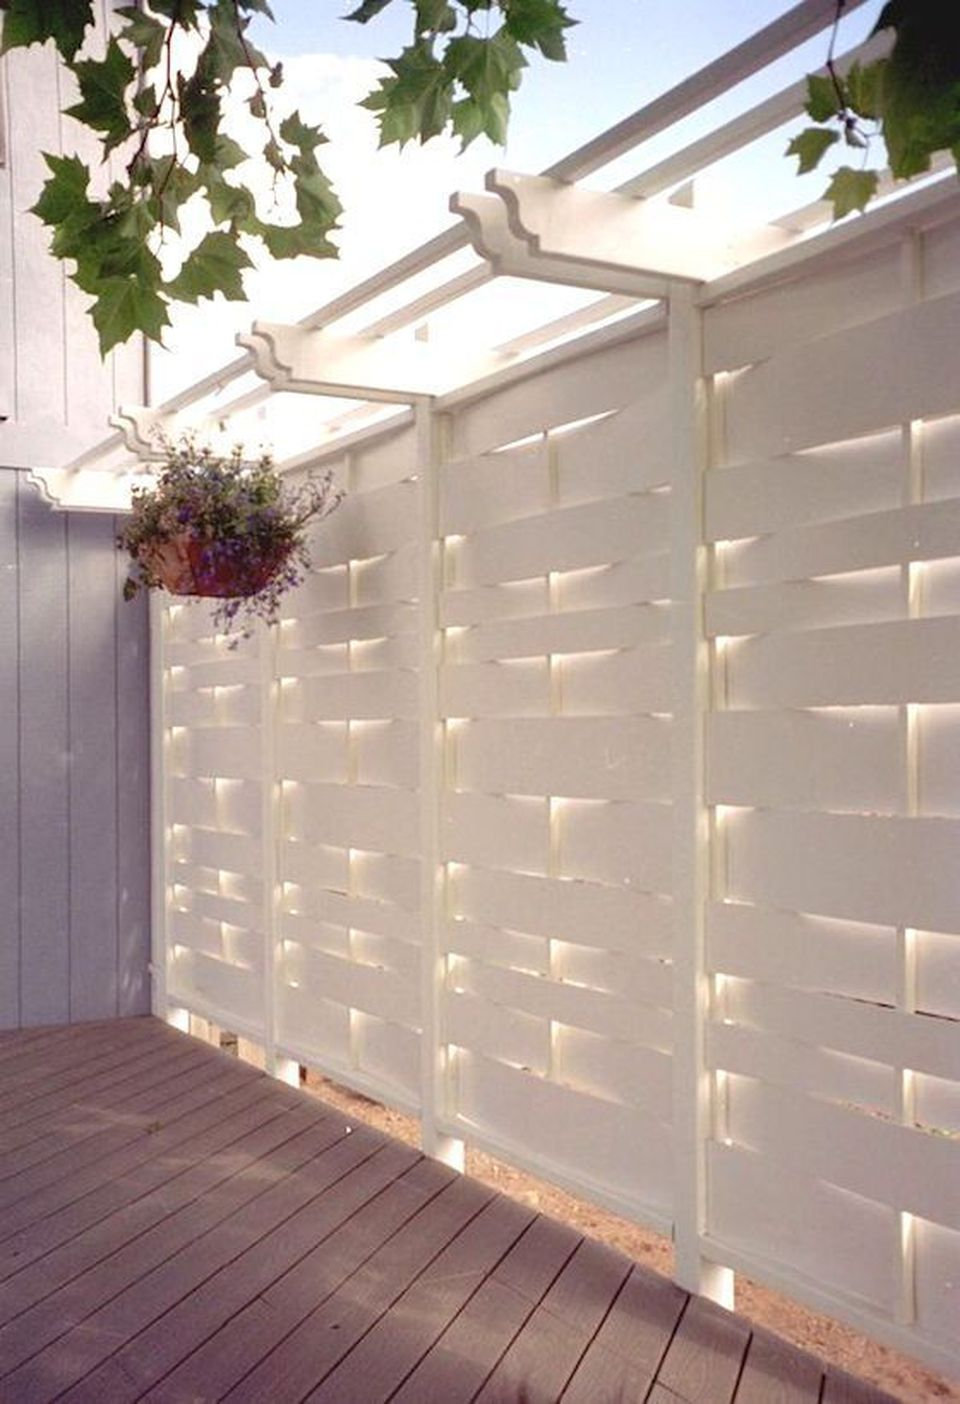 Cool Privacy Fence Wooden Design for Backyard 73 - Hoommy.com